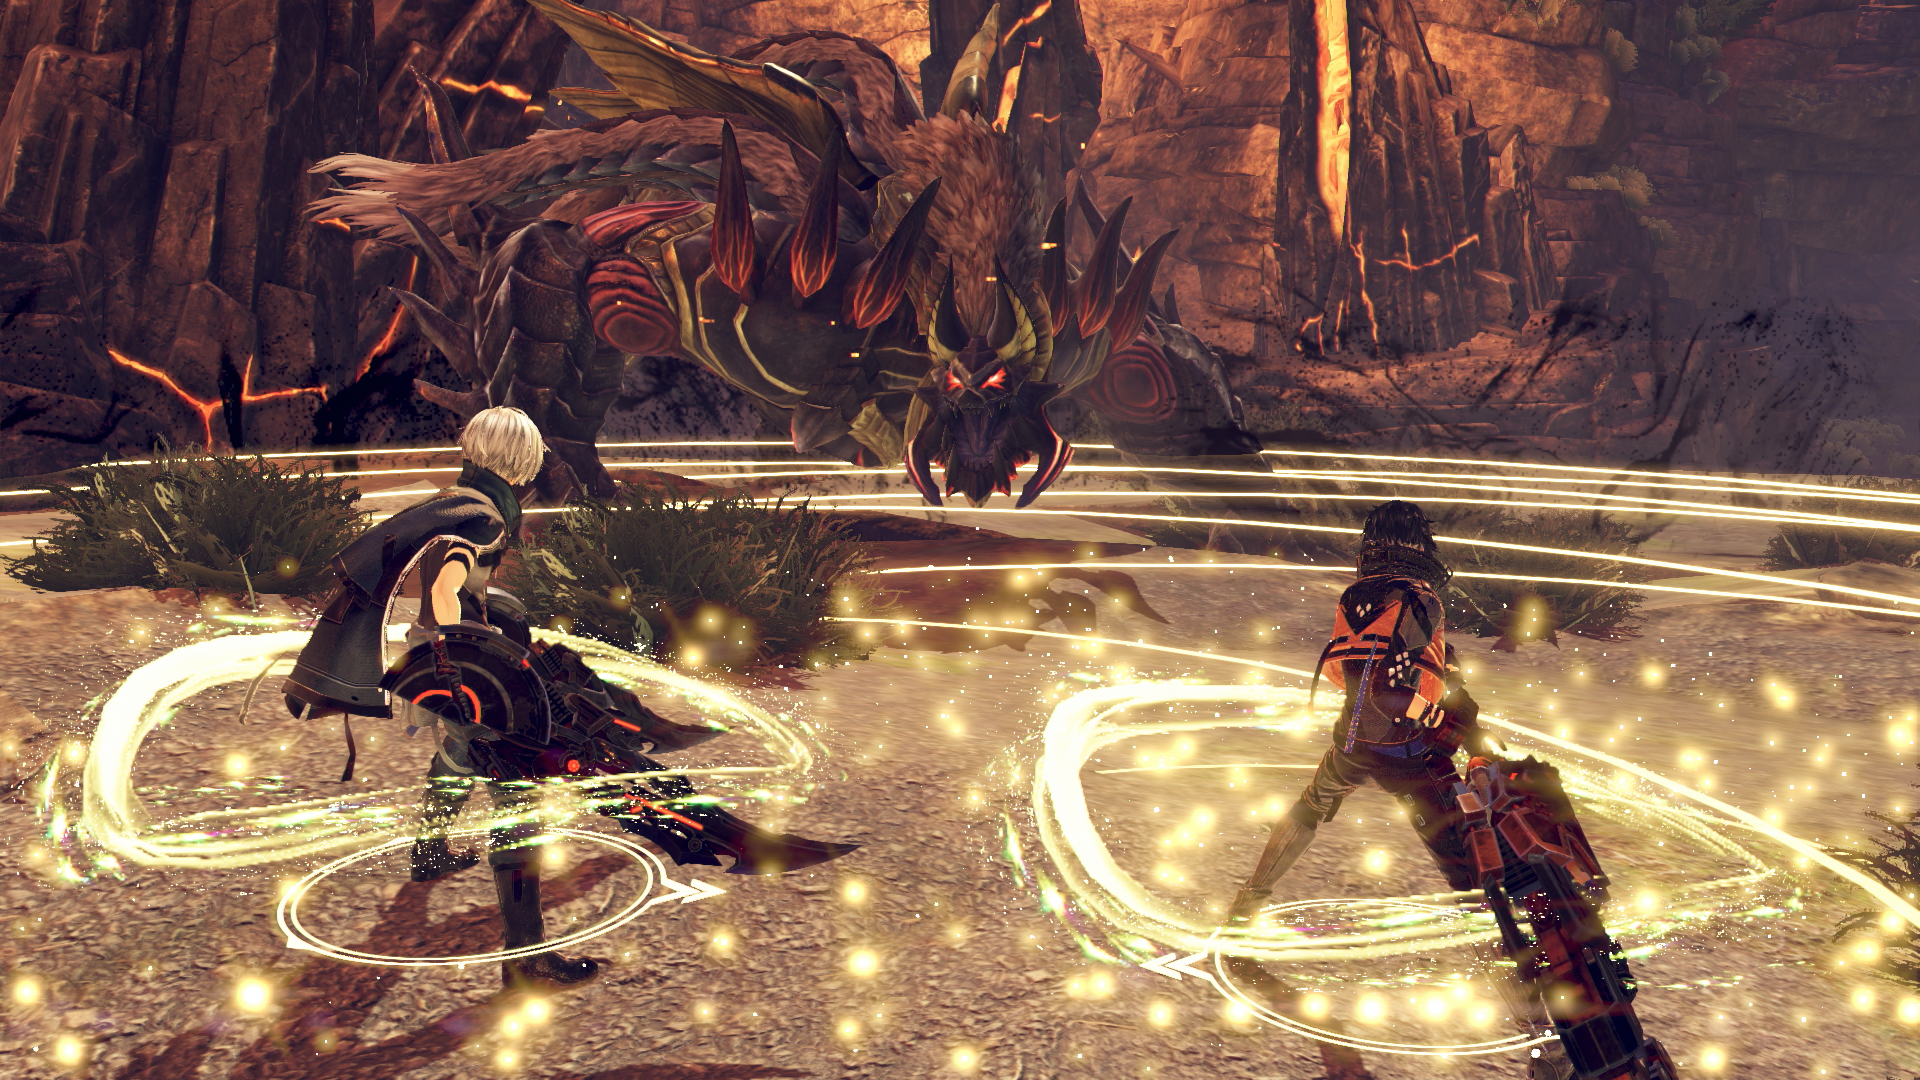 God Eater 3 Hands-On Impressions from TGS 2018 | RPG Site